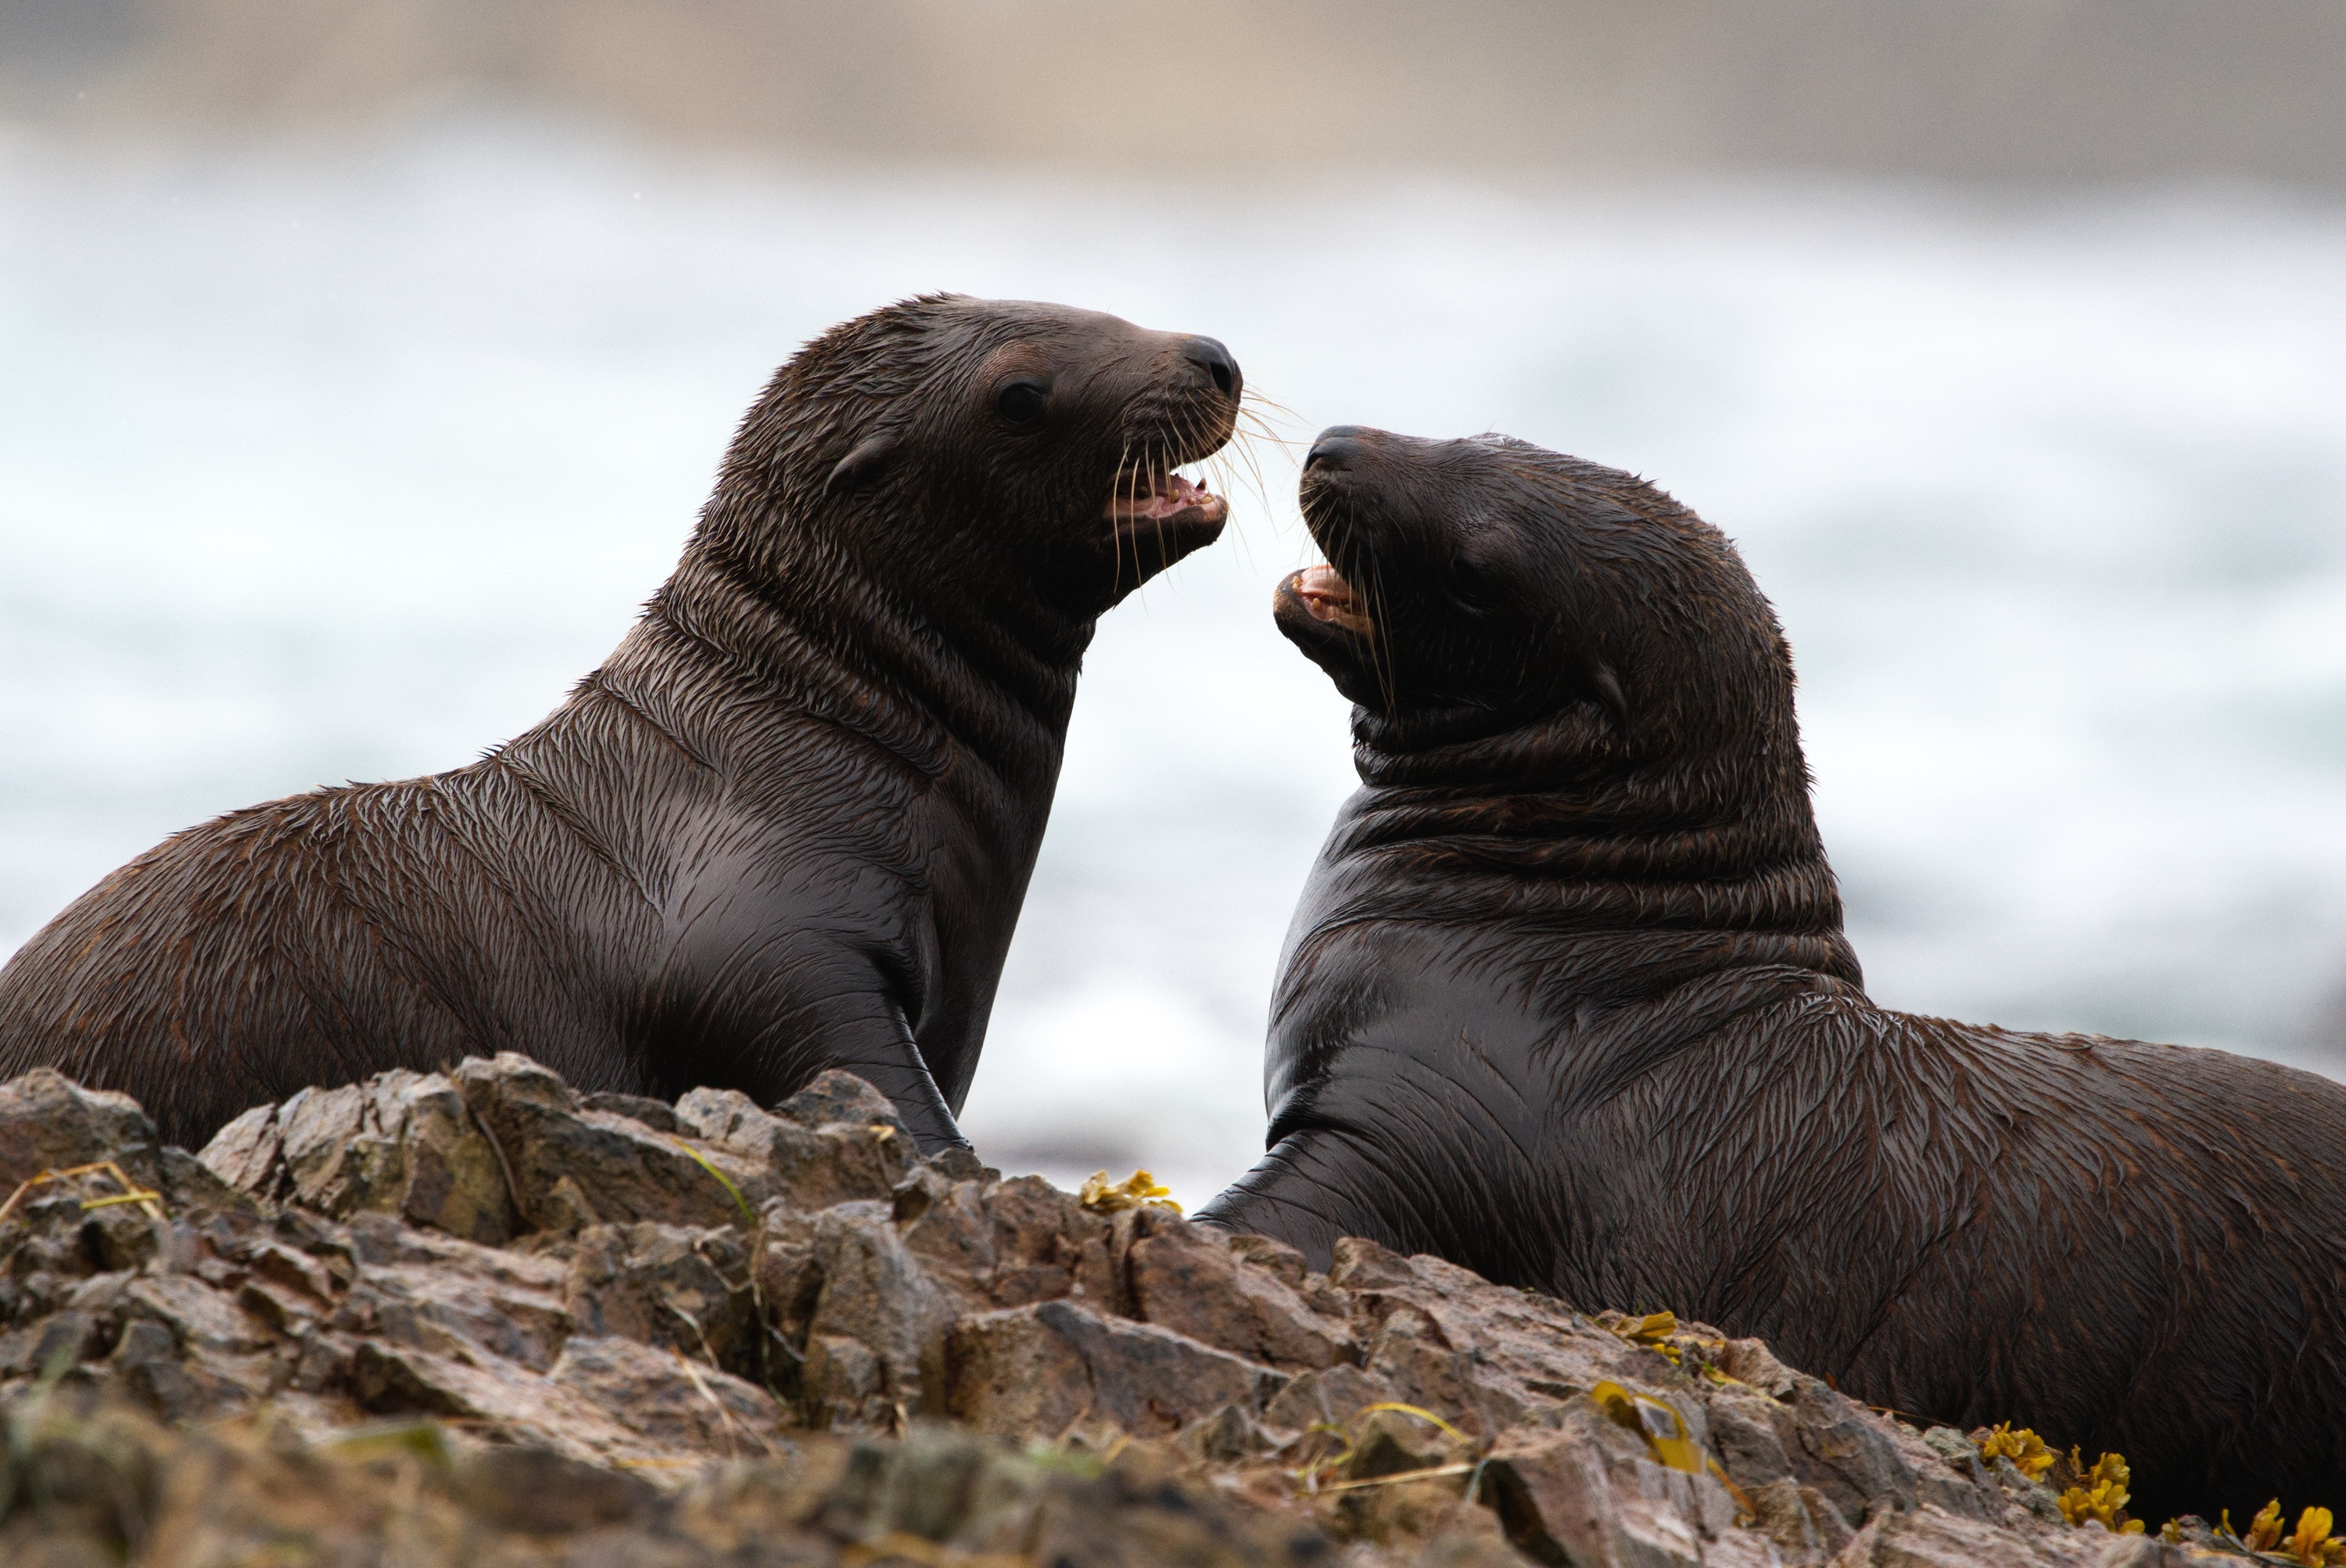 Two sea lion pups interact on the rocks. (National Geographic for Disney+/Ryan Tidman)